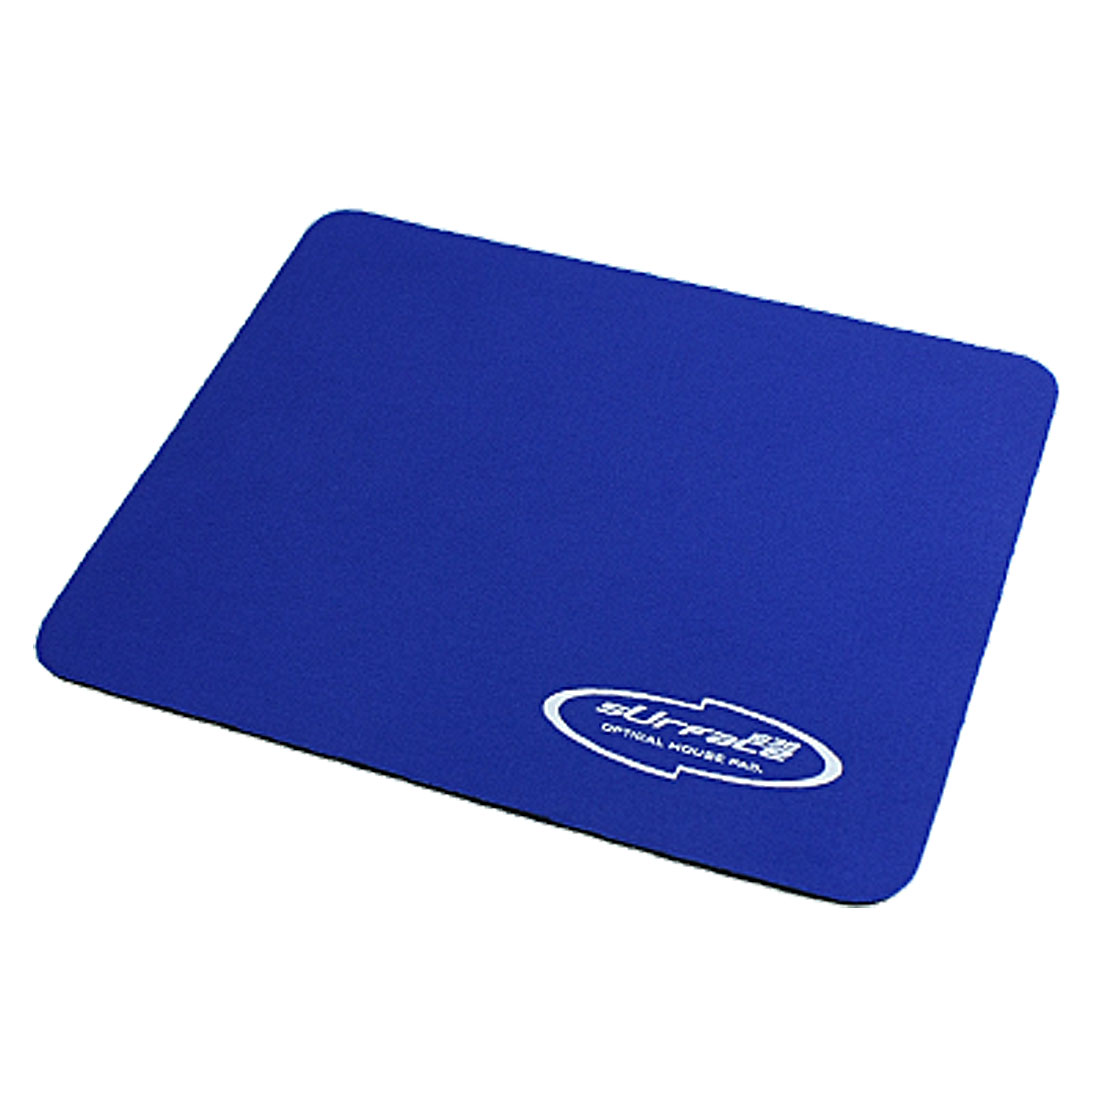 Blue Cloth Surface Optical Mouse Pad Mat for Computer